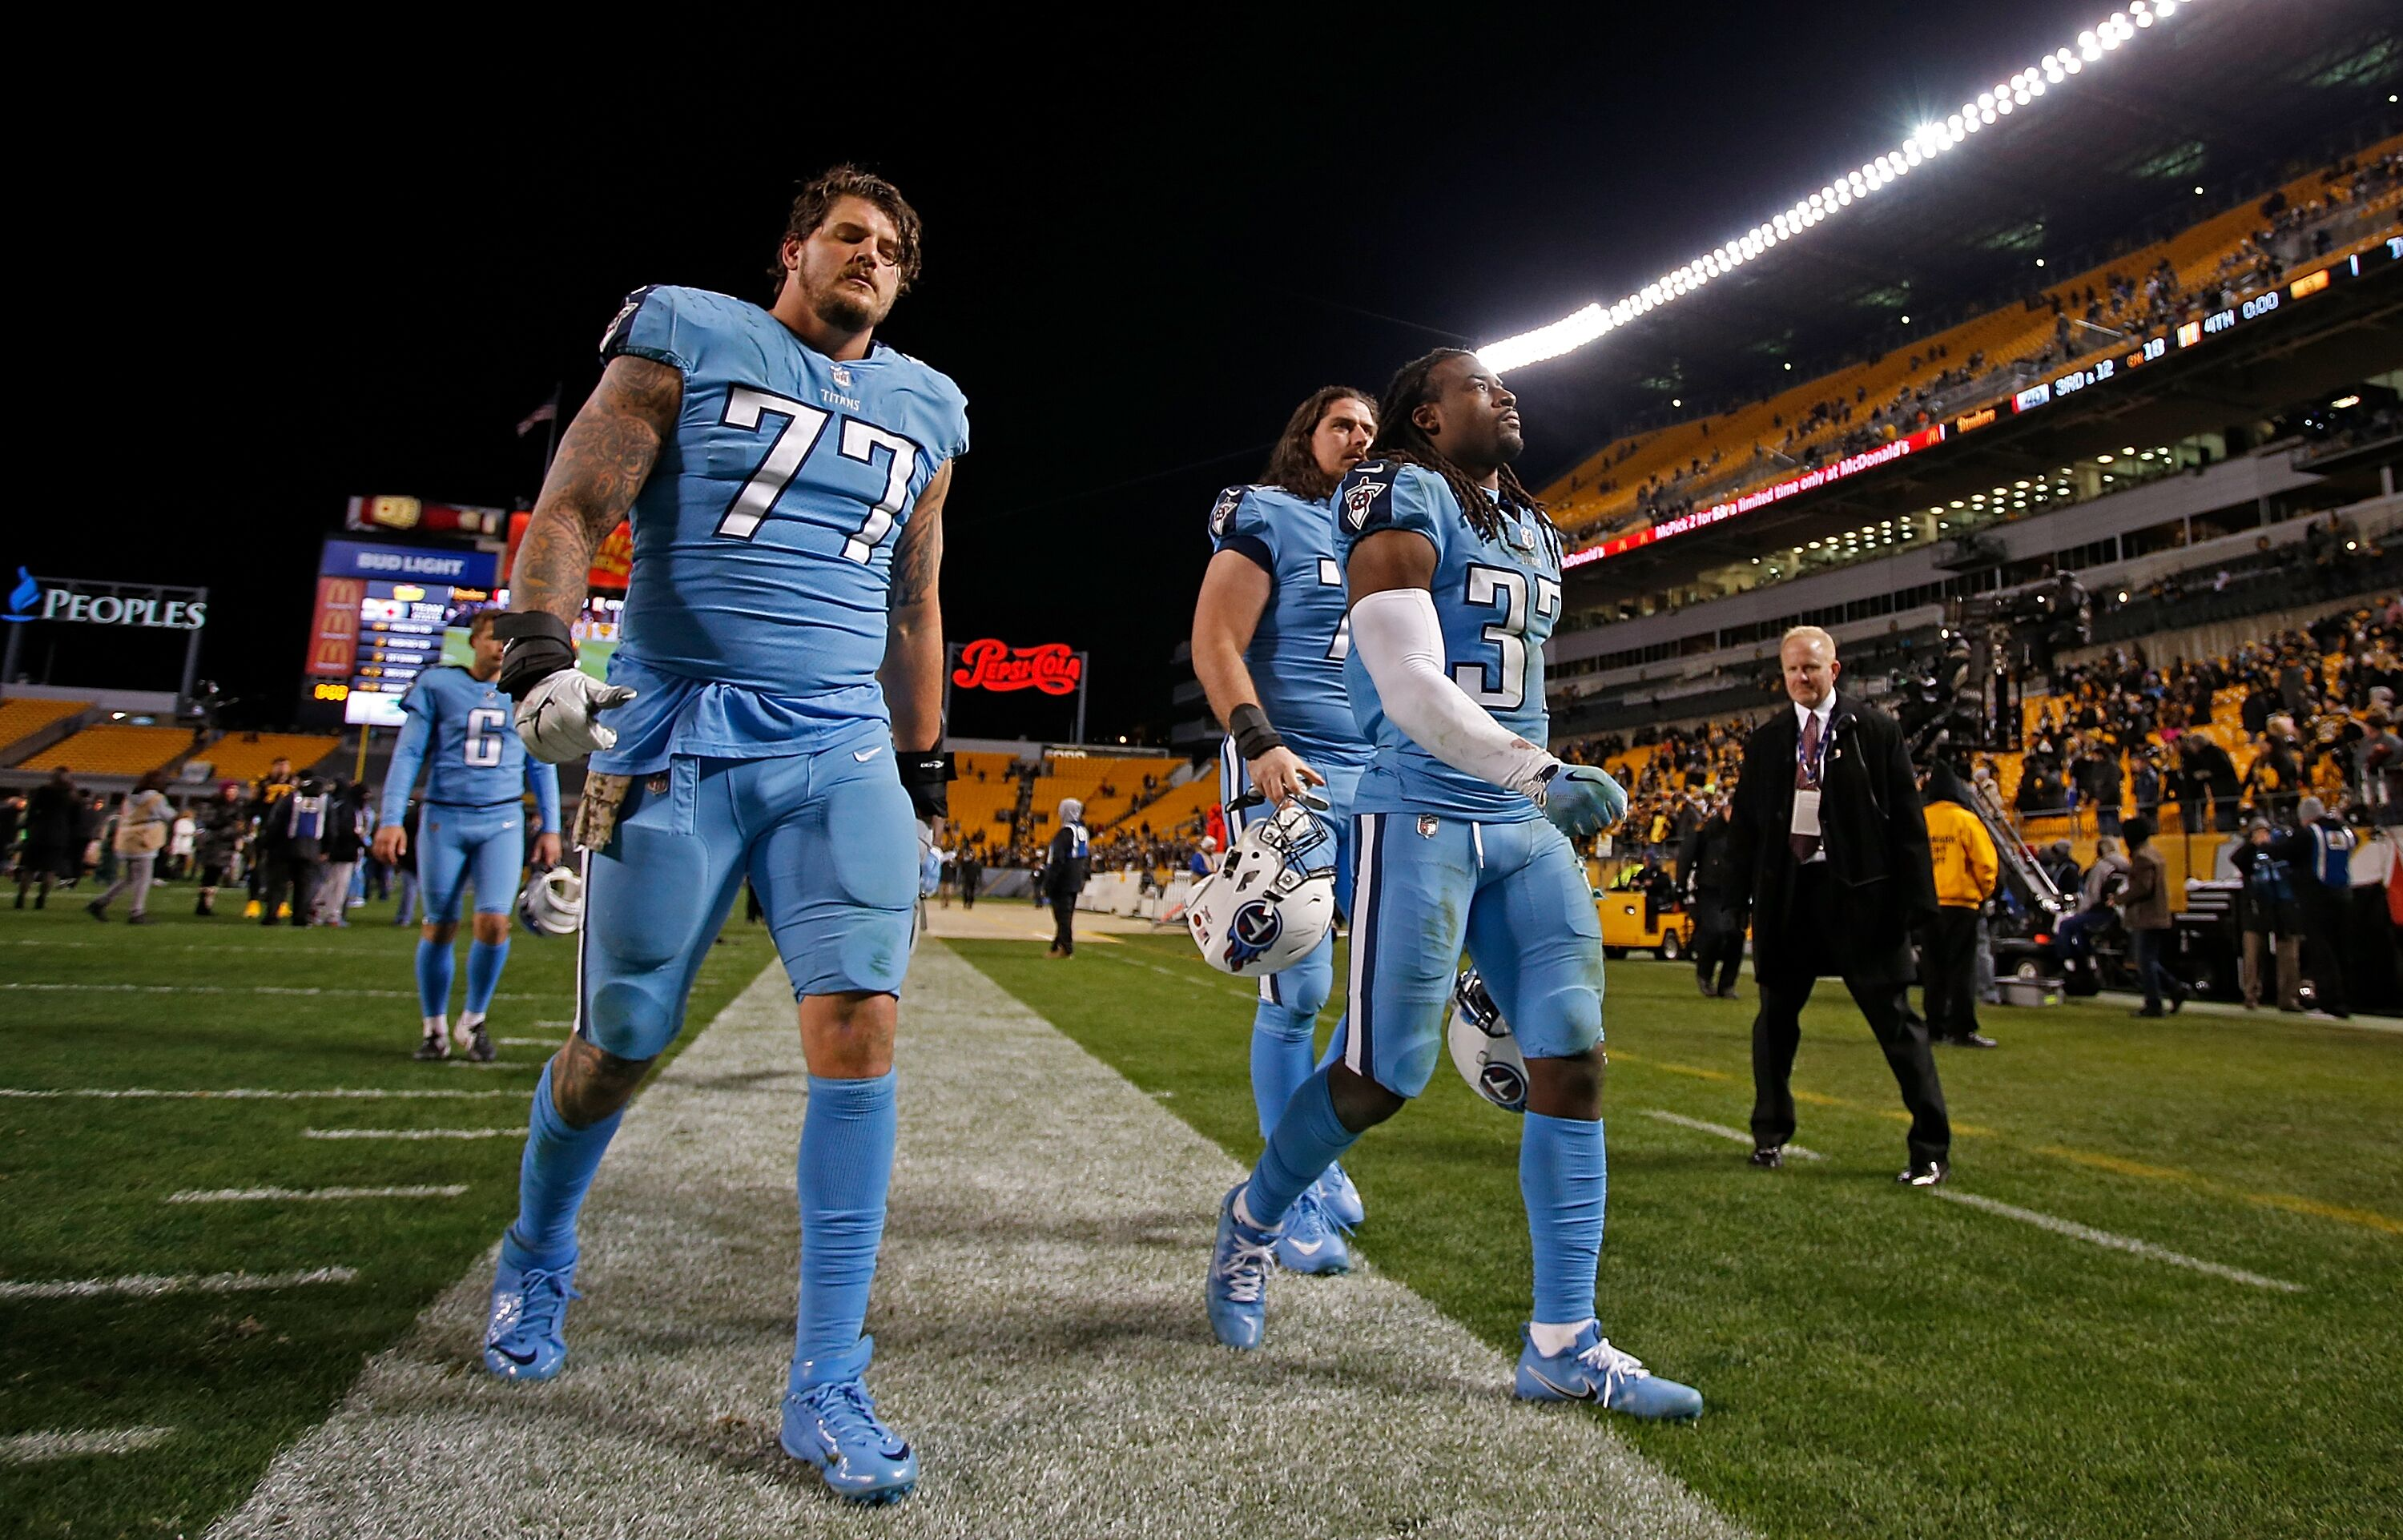 875140230-tennessee-titans-v-pittsburgh-steelers.jpg